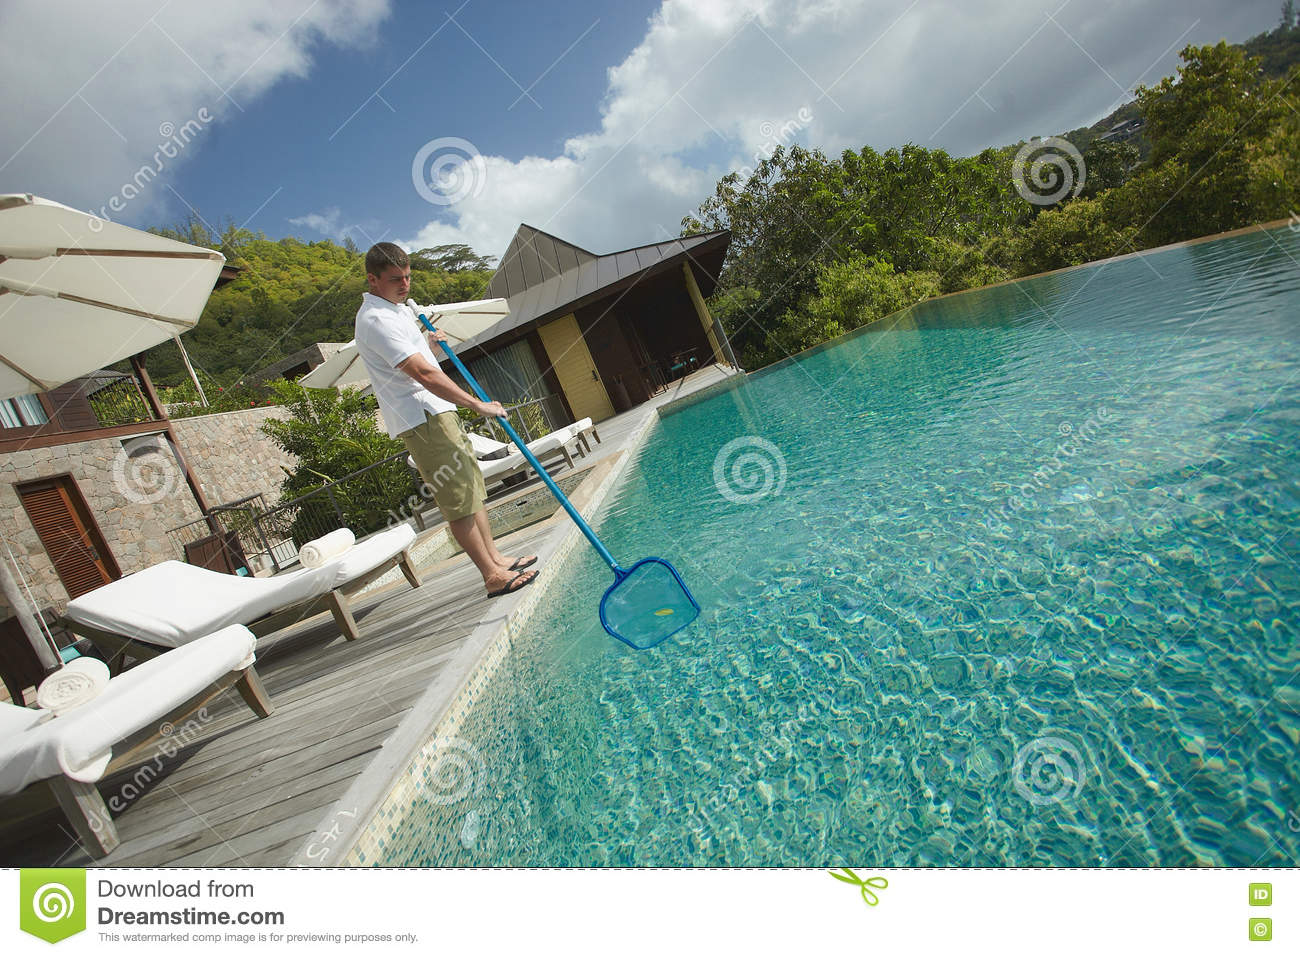 Swimming pool cleaner stock photos 643 images for Mangalore swimming pool timings